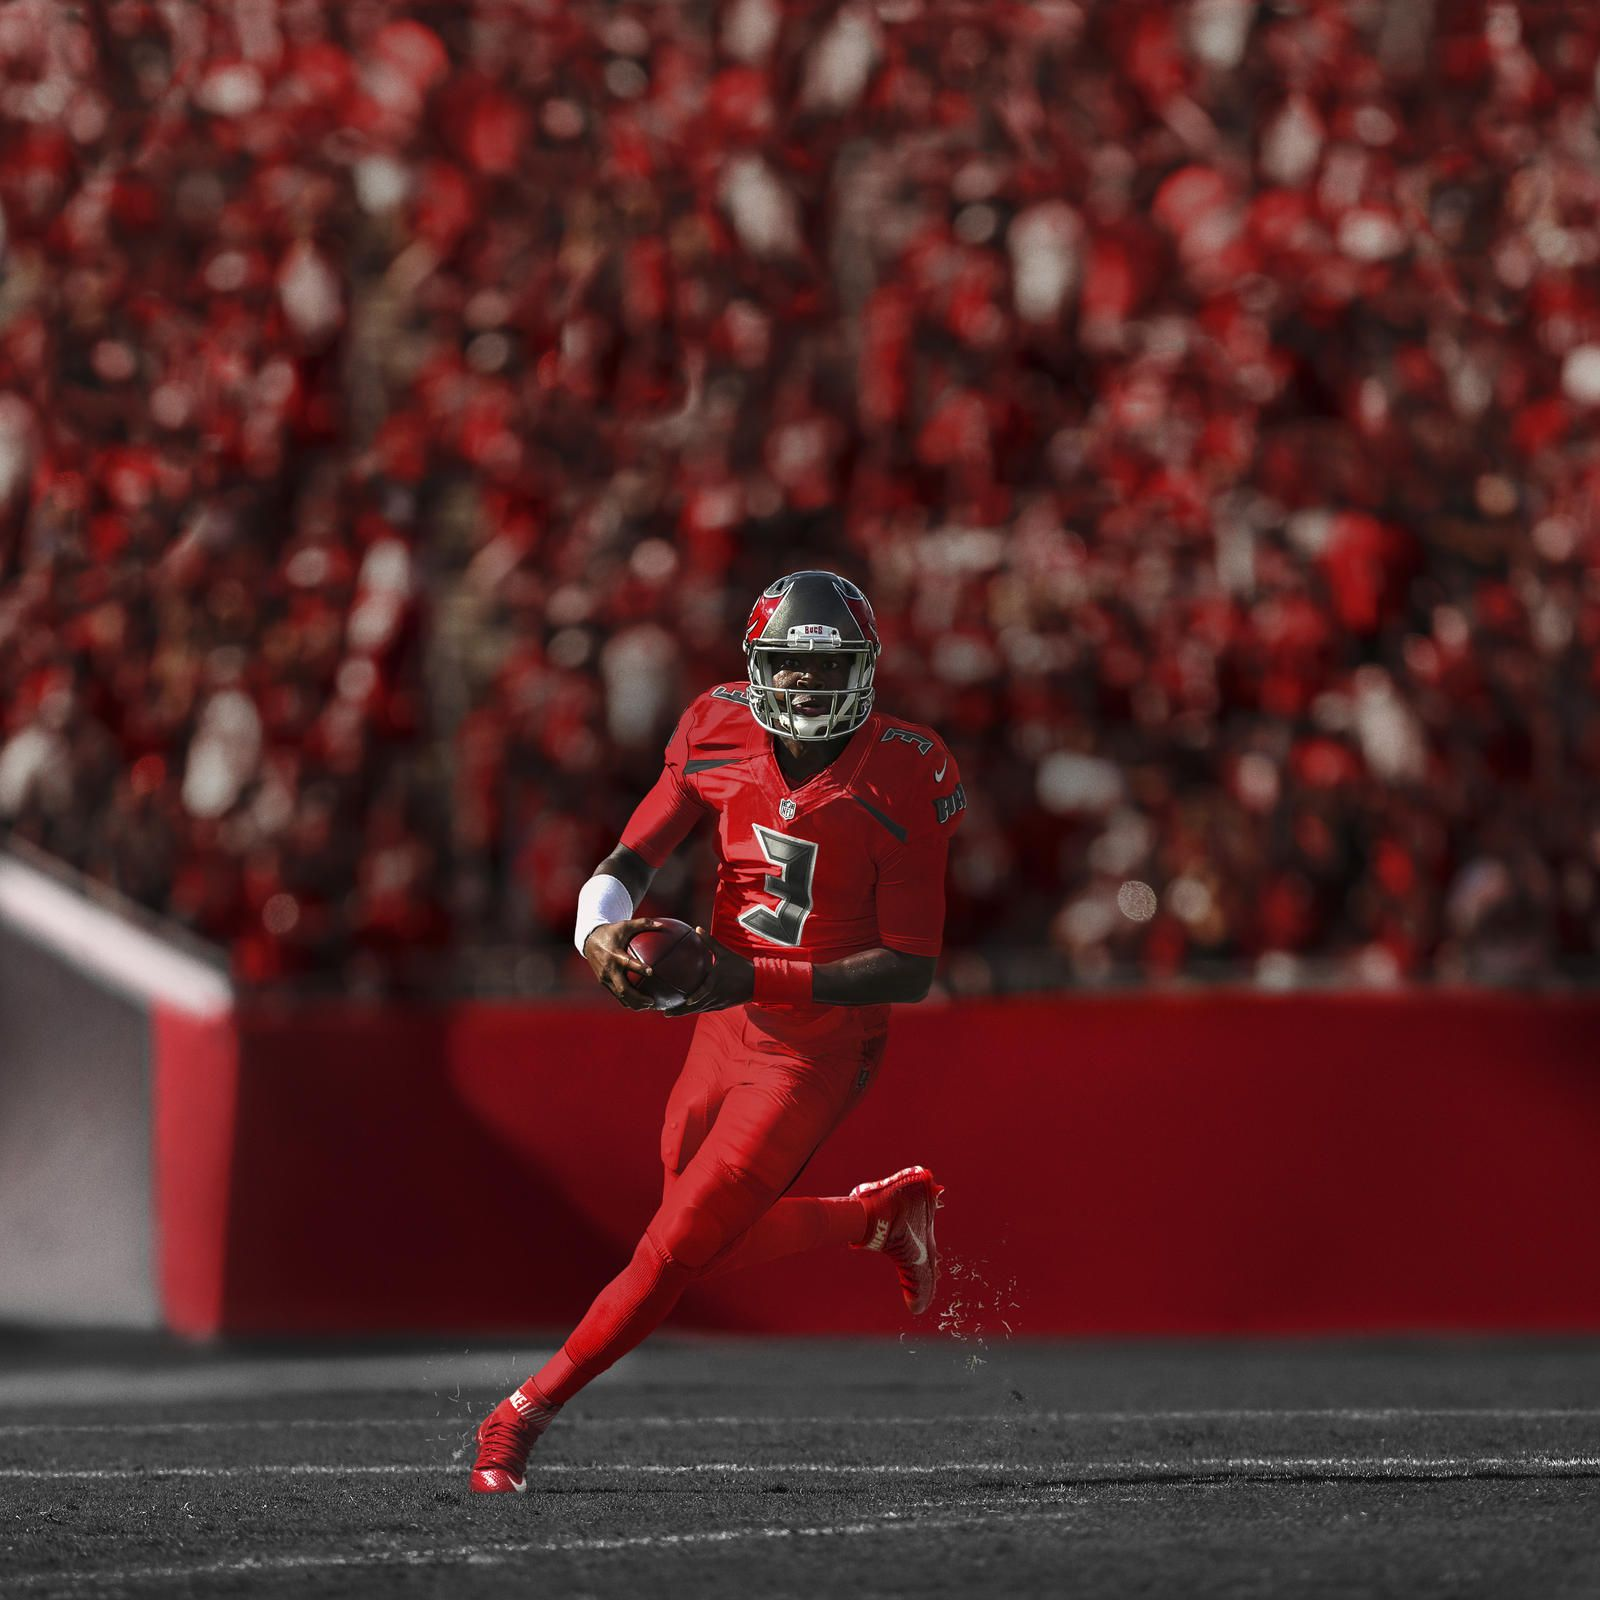 Nike And Nfl Flood Thursday Night Football With Color Tampa Bay Bucs Tampa Bay Buccaneers Football